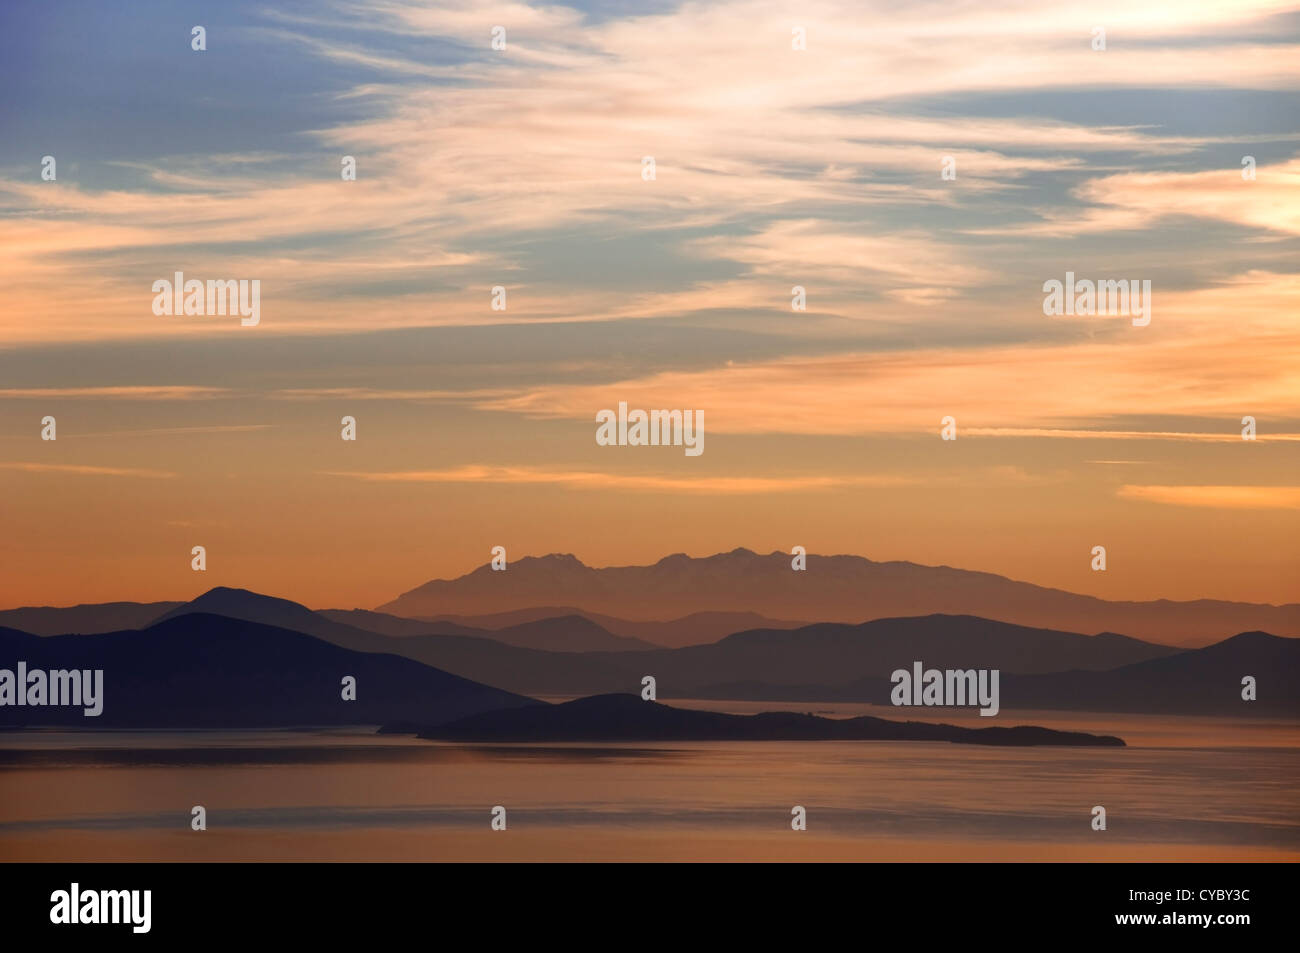 Panoramic view of the Pagasitic Gulf and mainland Greece taken from Pelion Peninsula, Thessaly, Greece Stock Photo